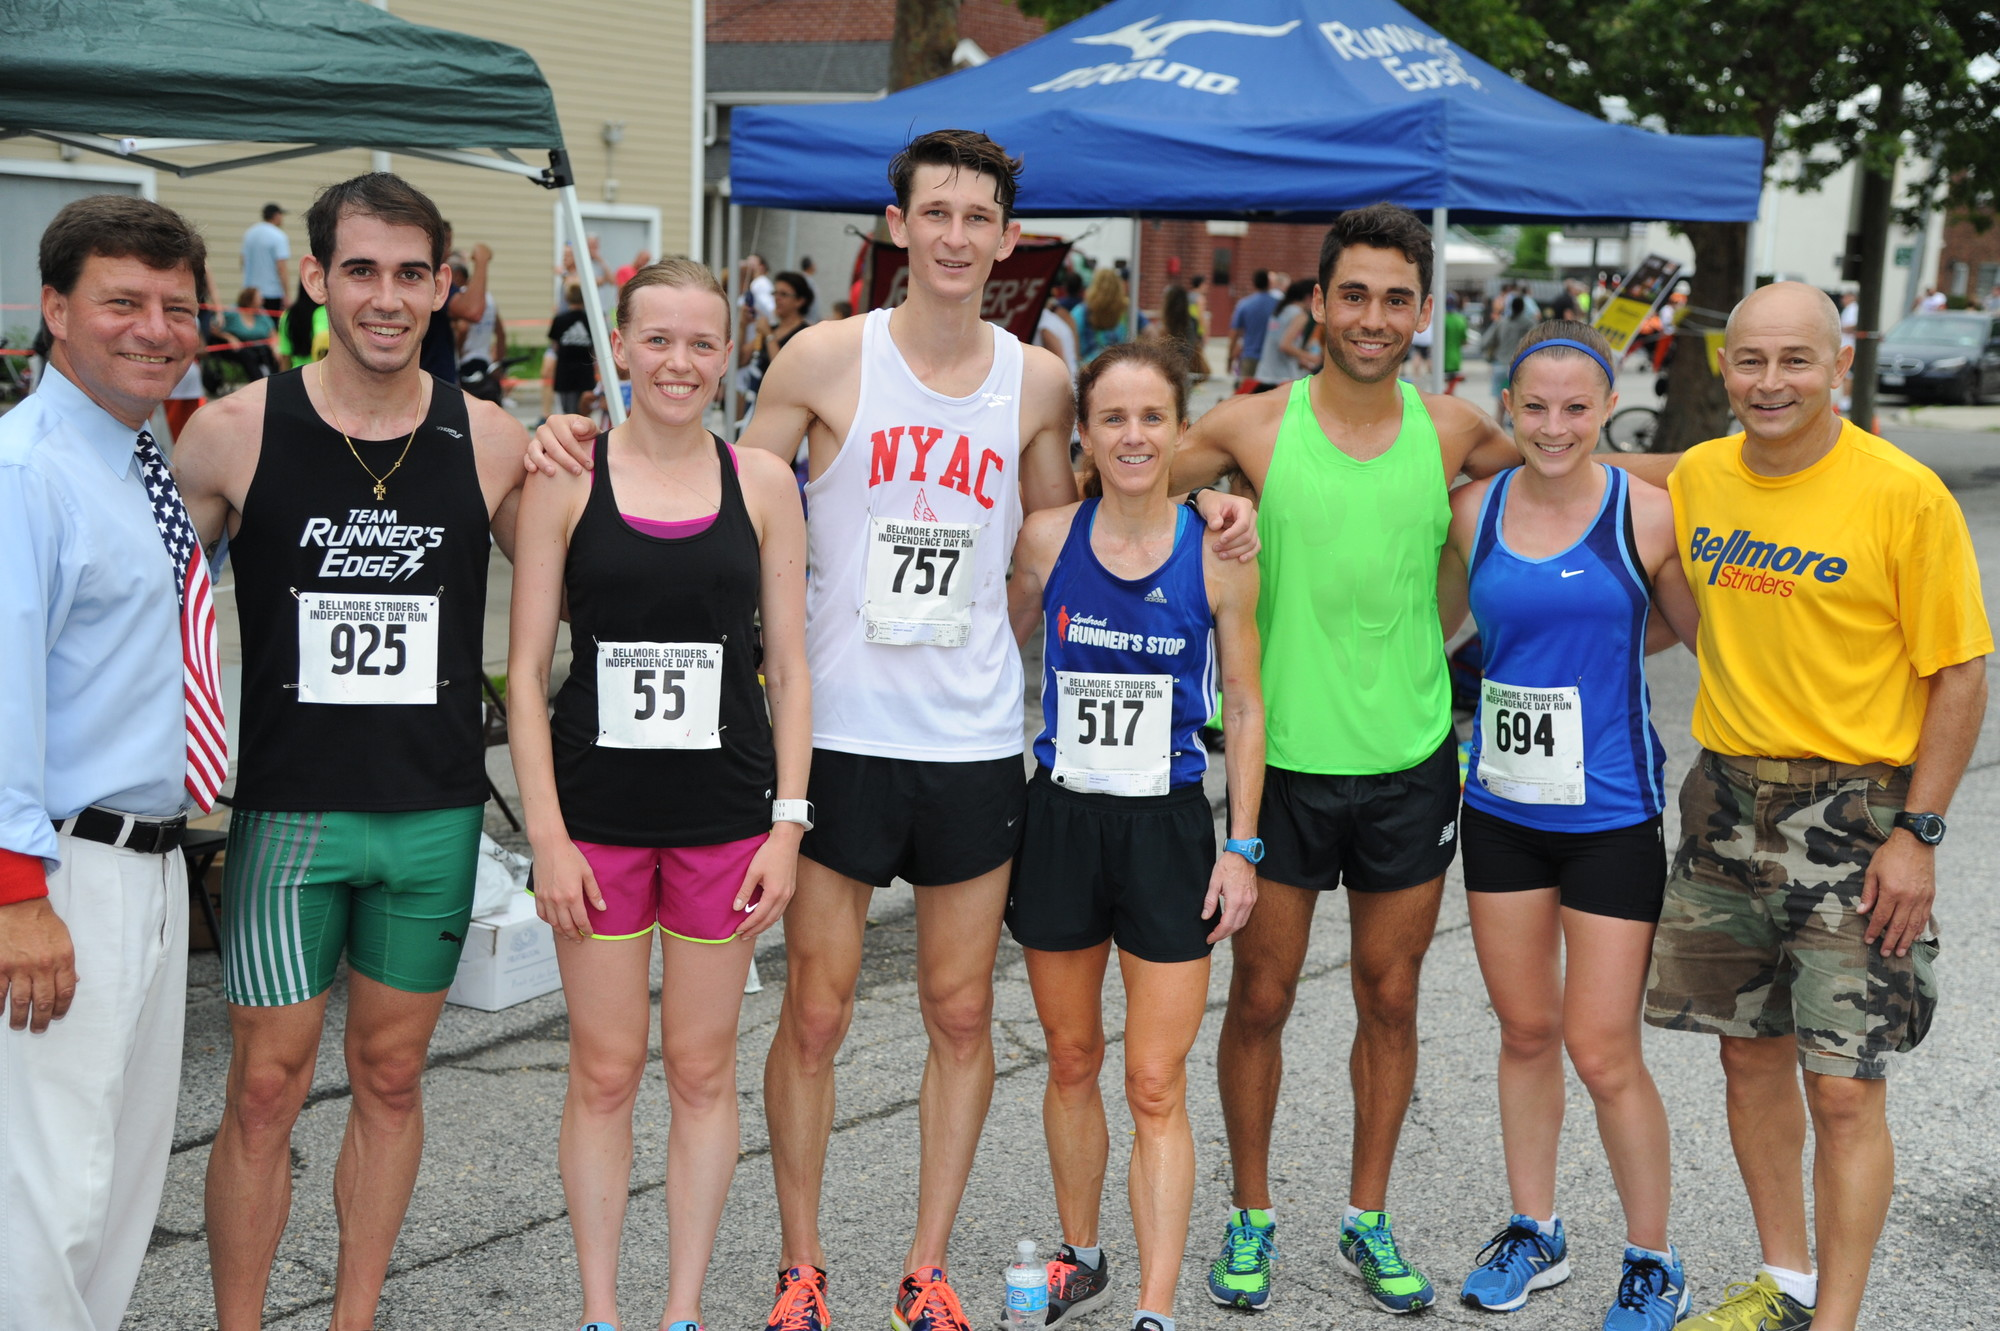 Nassau County Legislator Dave Denenberg and Bellmore Striders President Alex Cuozzo, far right, posed with the top runners, from left, third-place finisher Andrew Coelho, first-place women's finisher Victoria Kornieva, first-place finisher Robert Molke, third-place women's finisher Una Broderick, second-place finisher Julian Saad and second-place women's finisher Jacy Kruzel.